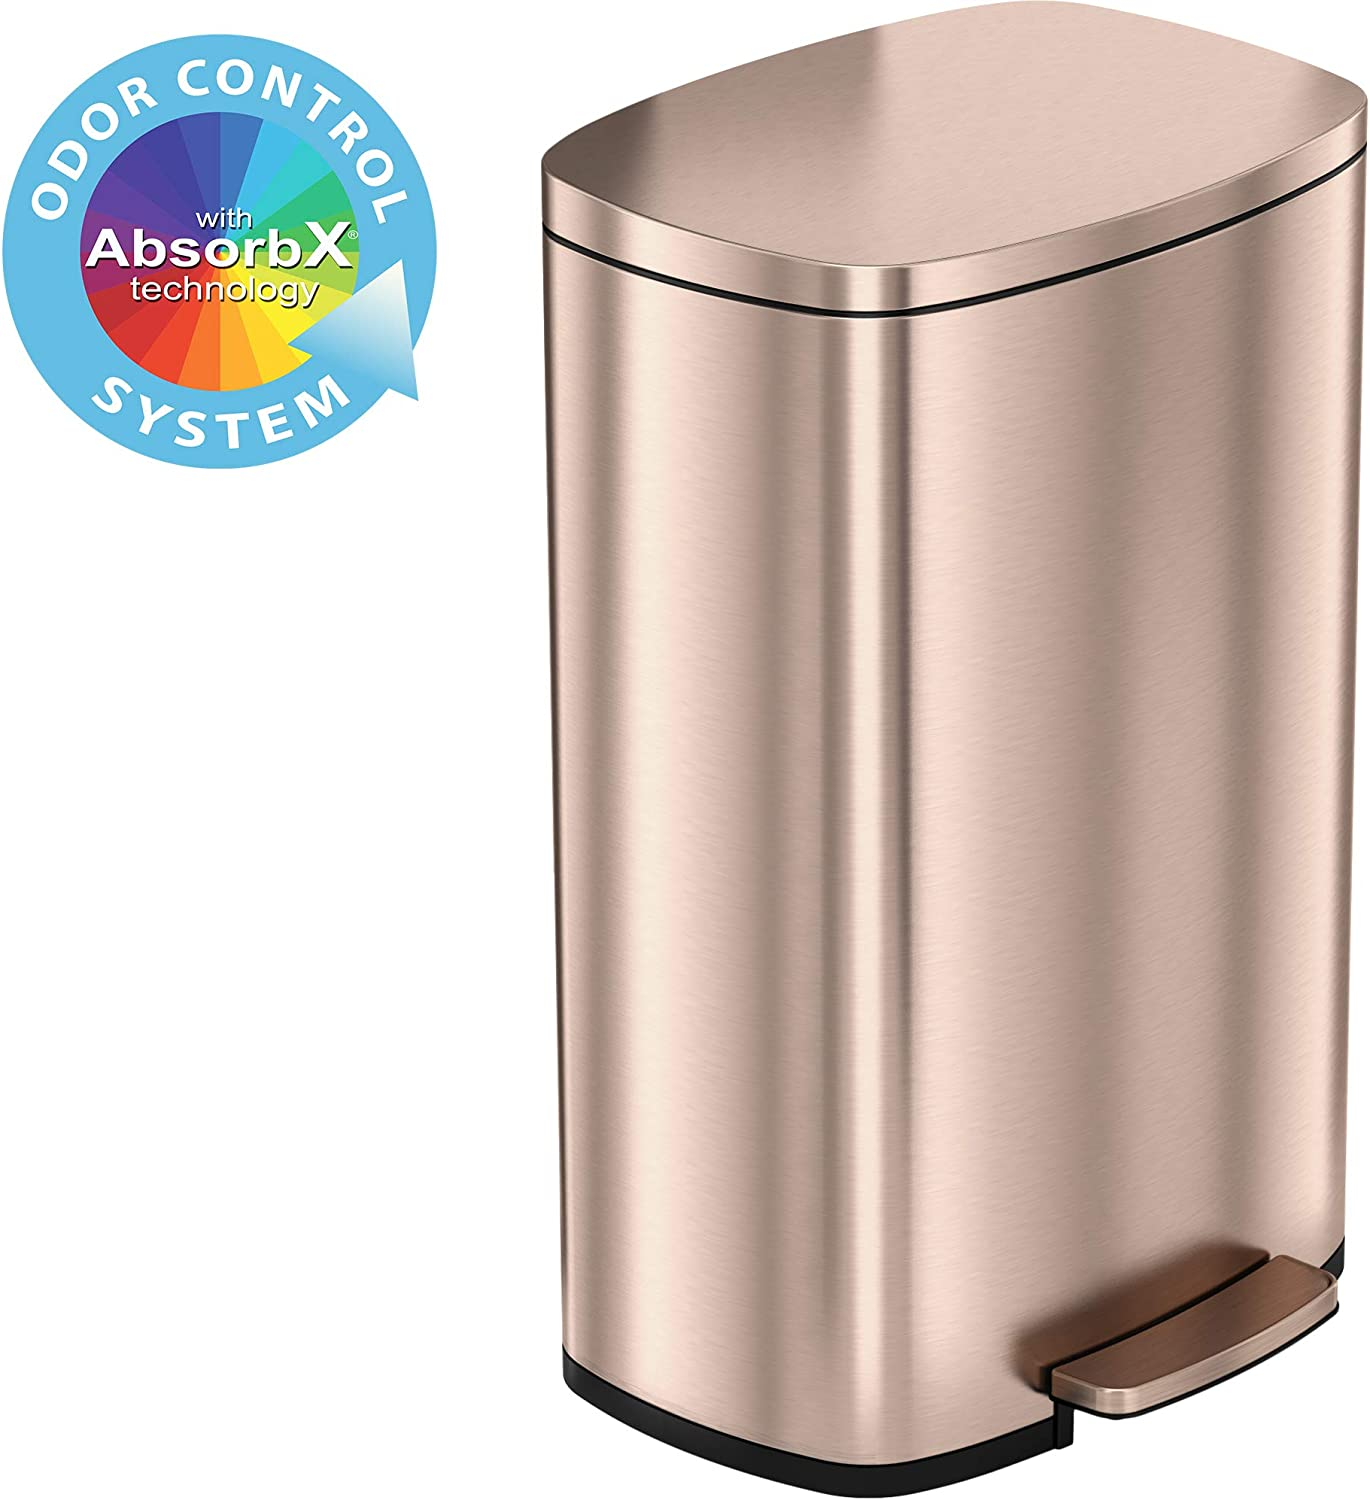 iTouchless SoftStep 13.2 Gallon Stainless Steel Step Trash Can with Odor Control System, 50 Liter Pedal Garbage Bin for Kitchen, Office, Home - Silent and Gentle Open and Close, Rose Gold